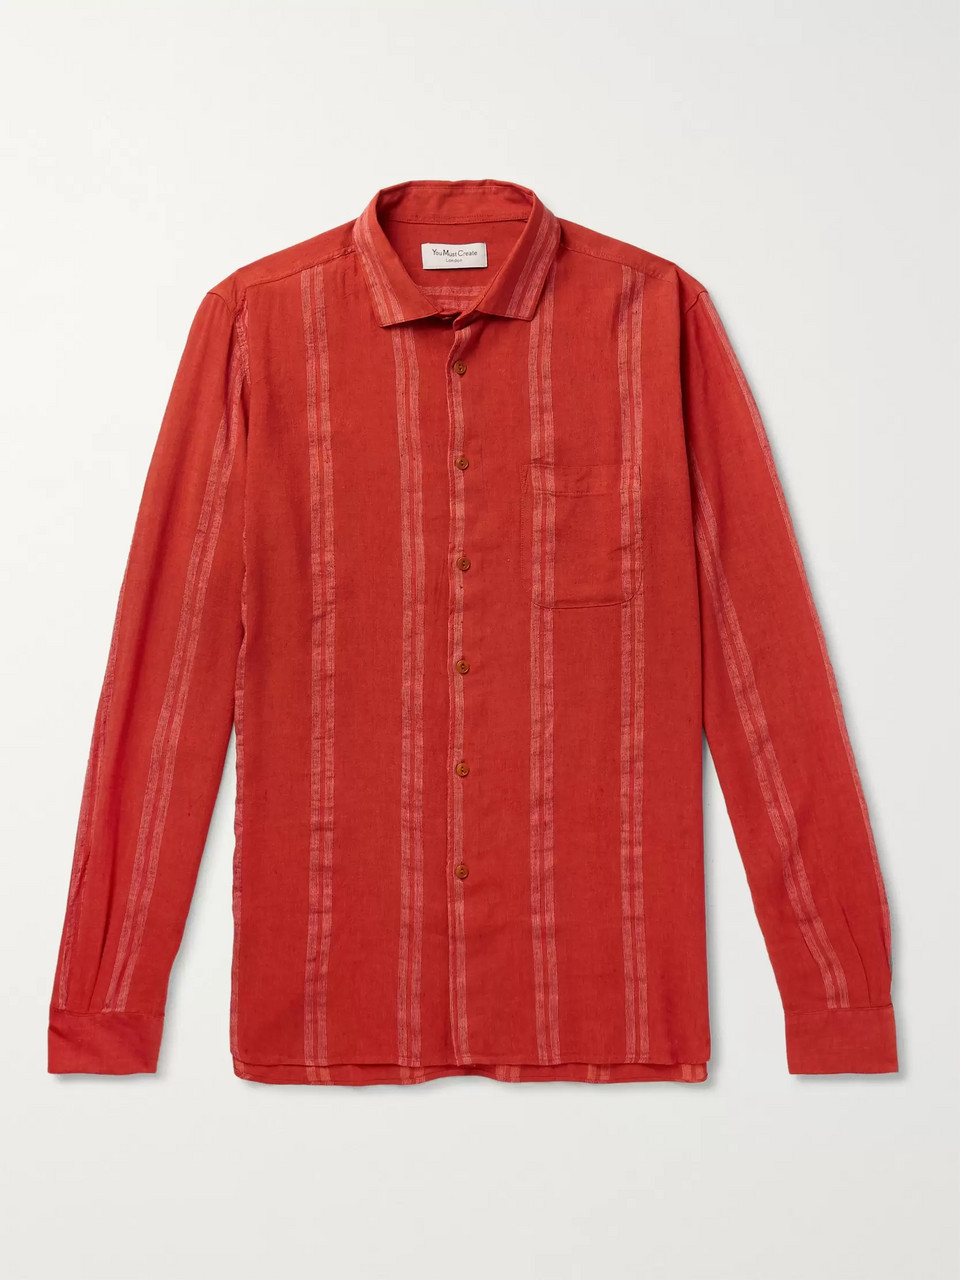 YMC Striped Gauze Shirt